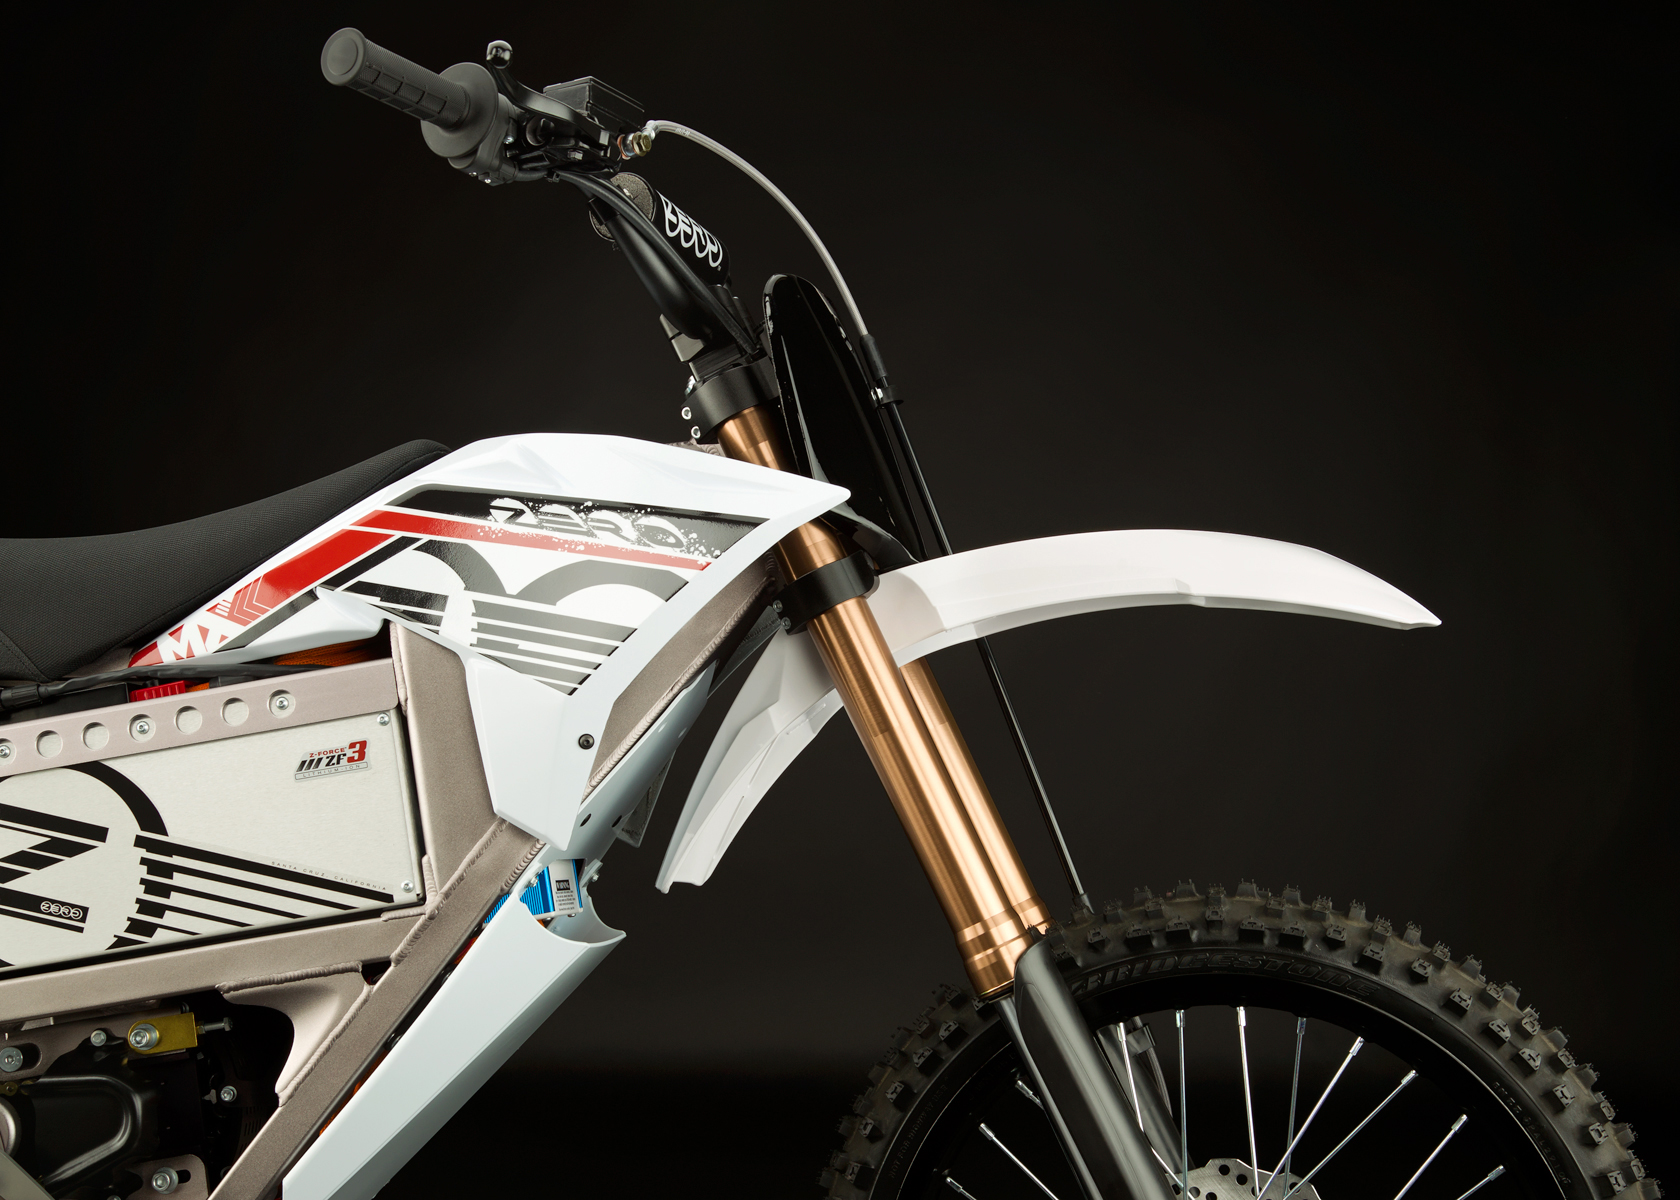 '.2012 Zero MX Electric Motorcycle: Front Fork.'